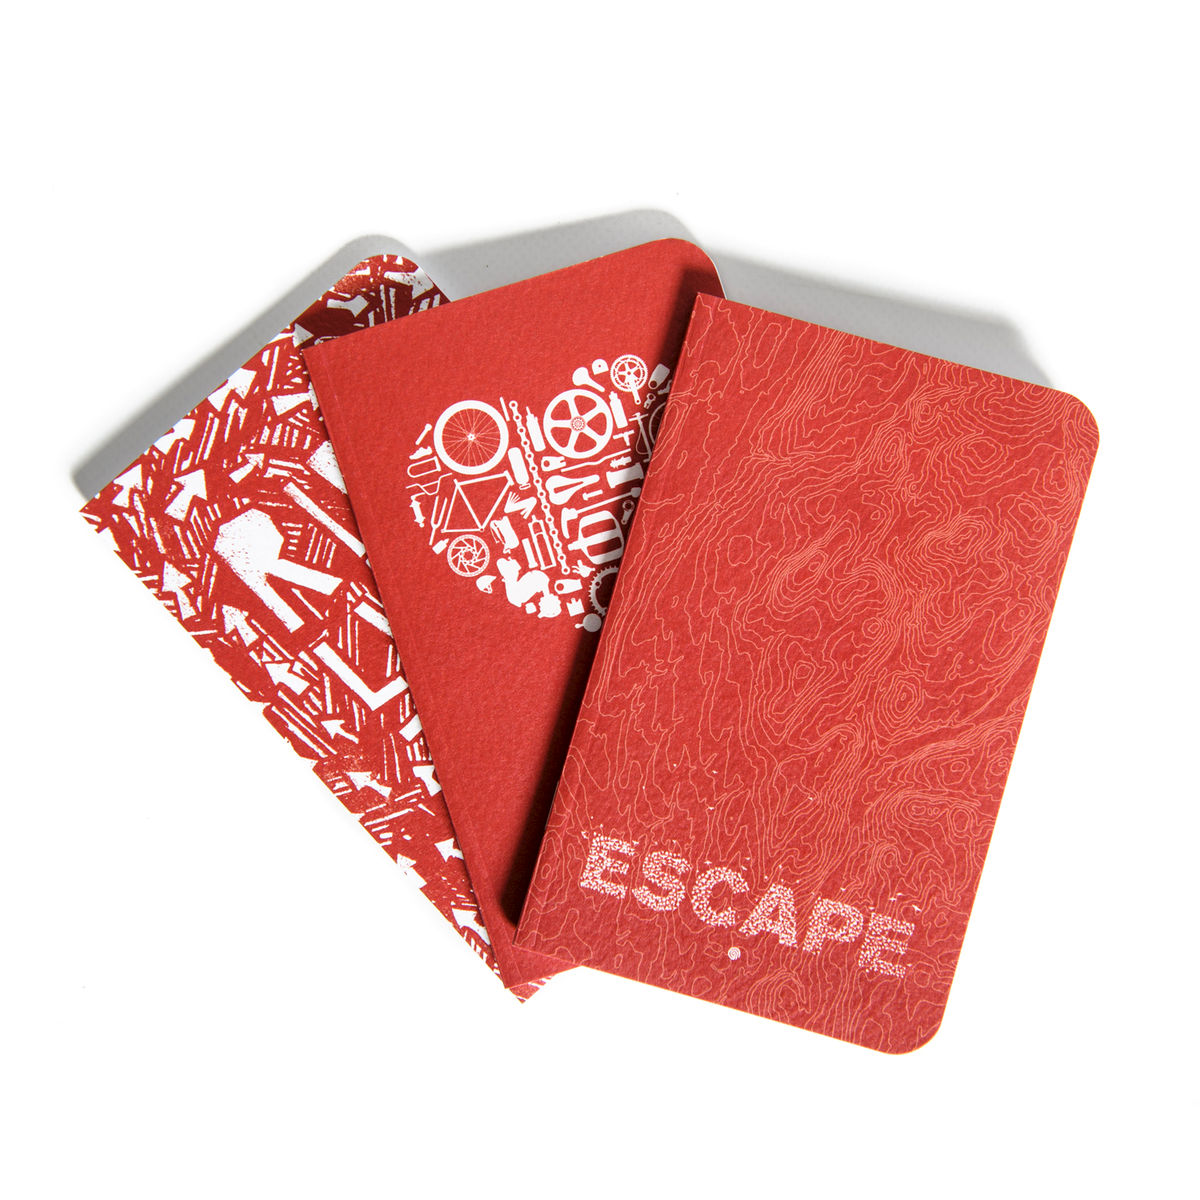 notō pocket journal - red - product images  of